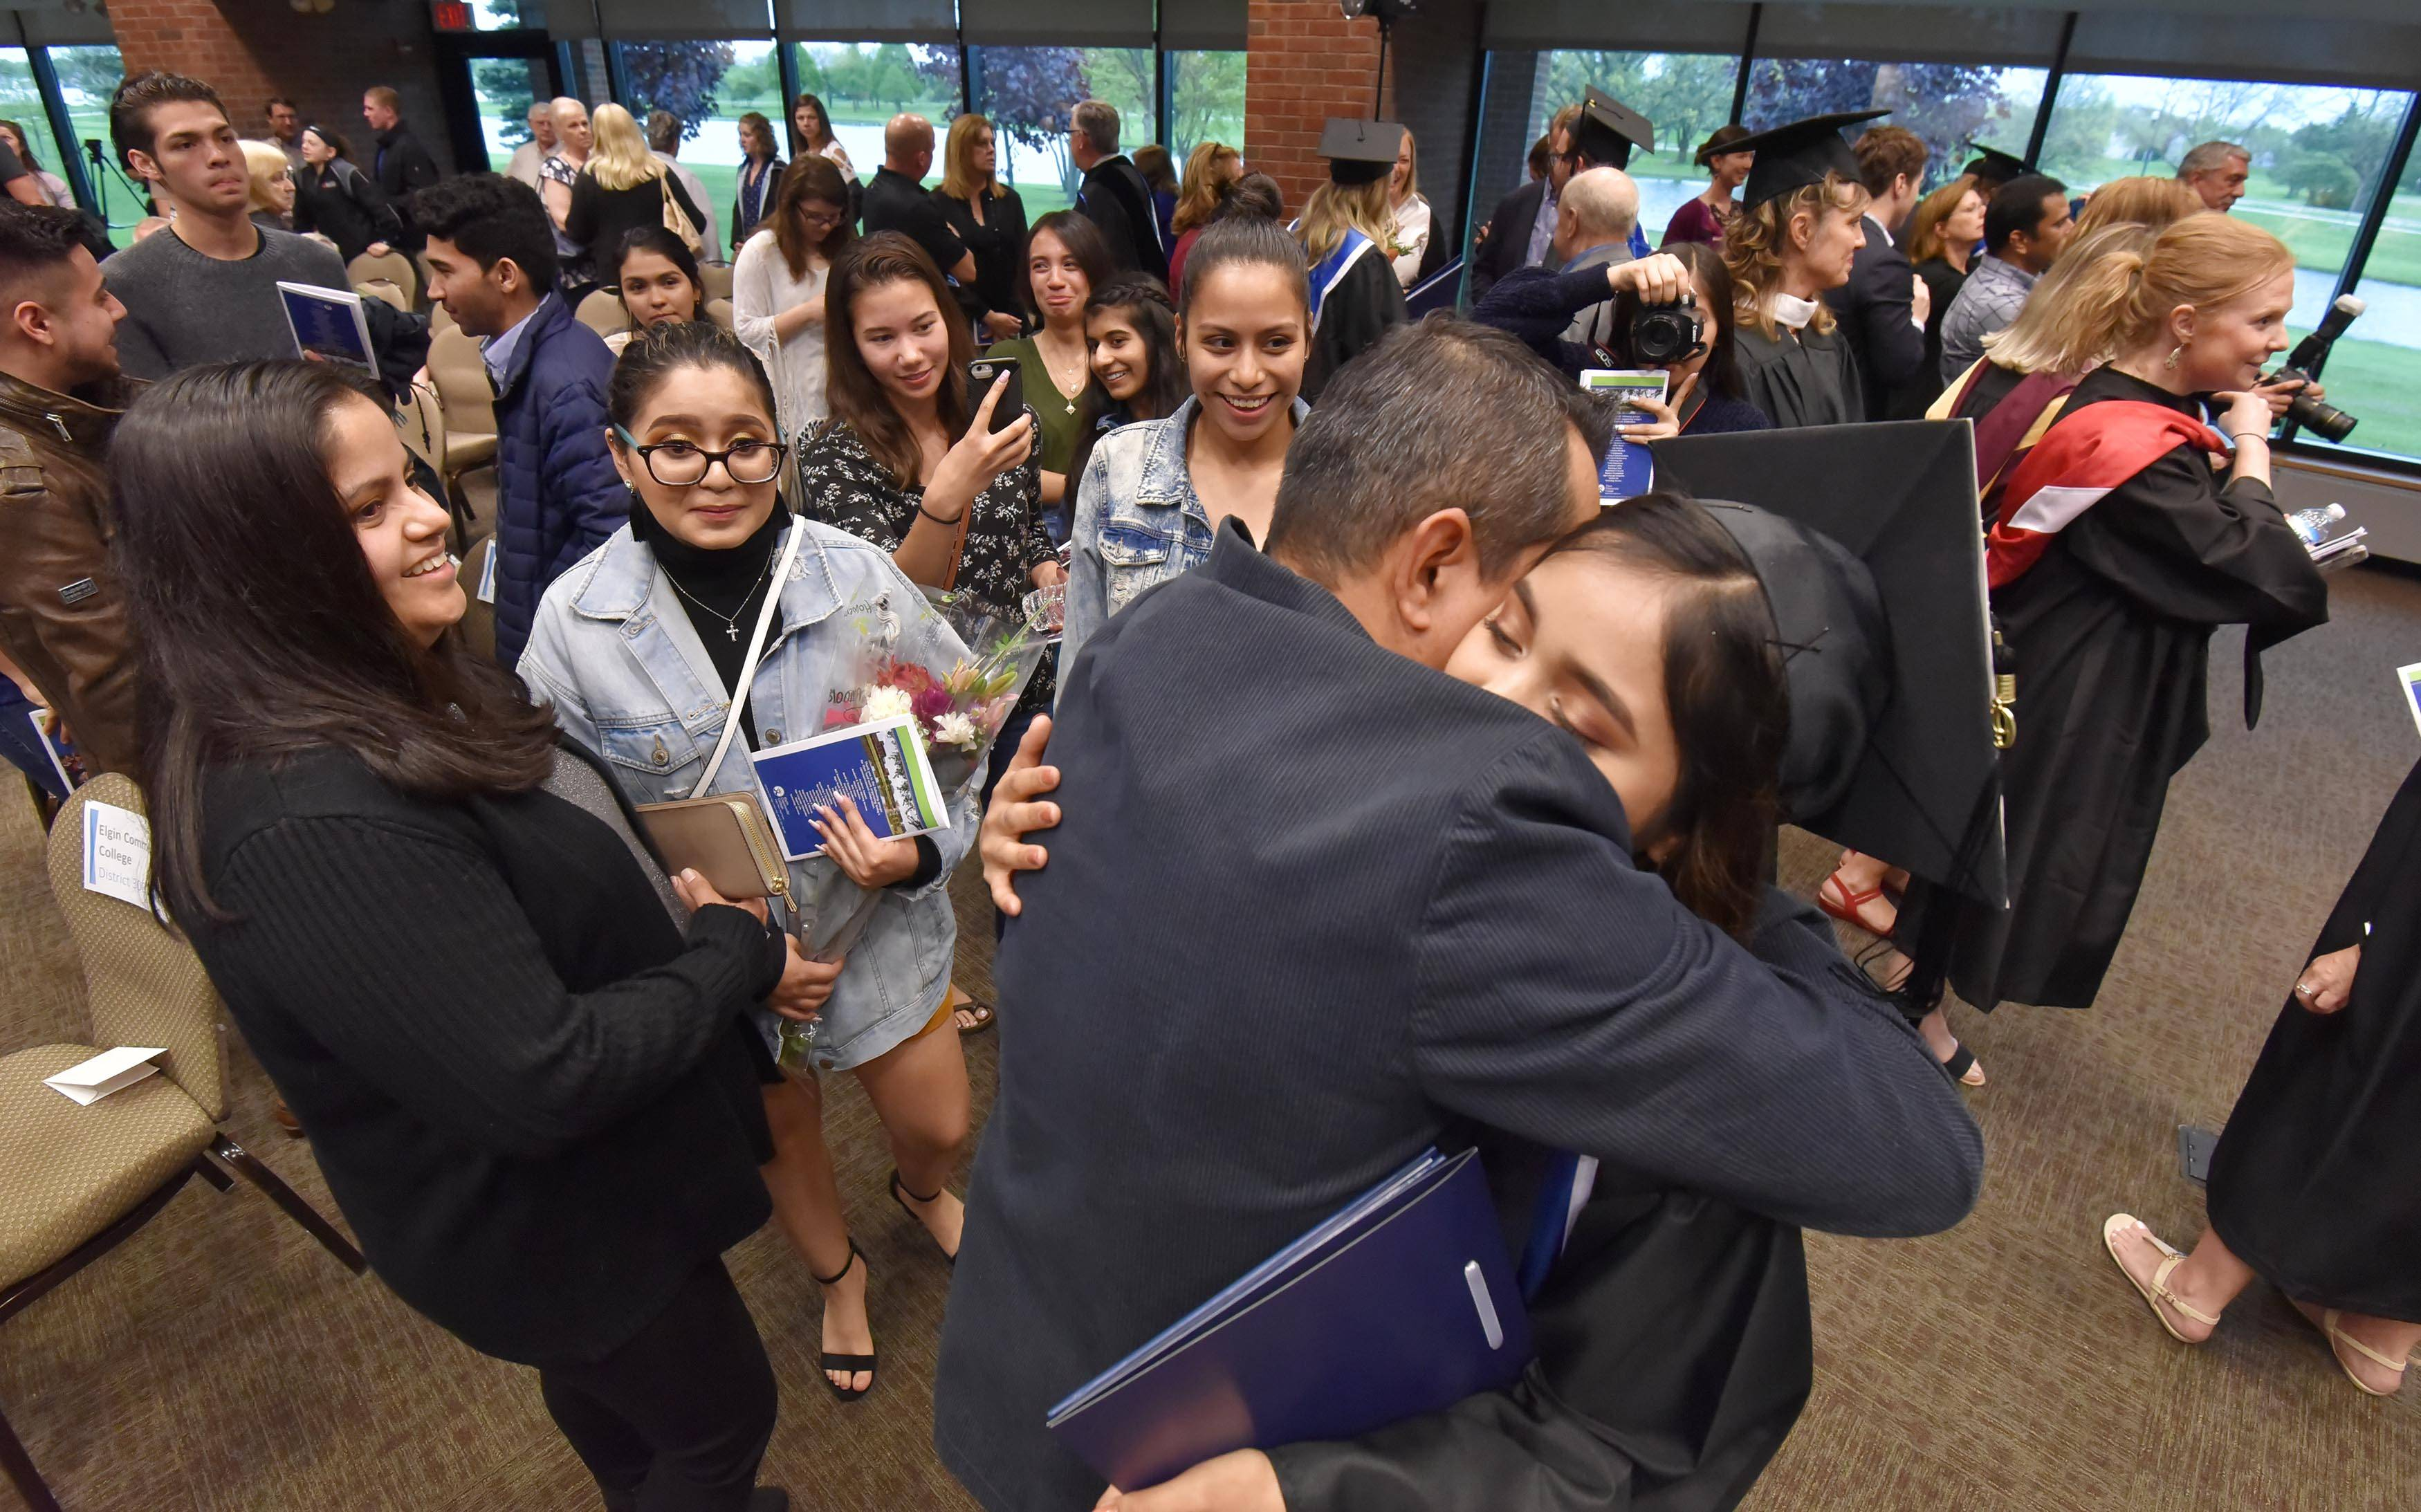 Anna Yessica Tello is hugged by her father, Guillermo, after she got her Associate of Arts degree from Elgin Community College on Friday. She was one of 10 Community Unit District 300 high school students to receive their associate degrees from ECC before getting their high school diplomas.